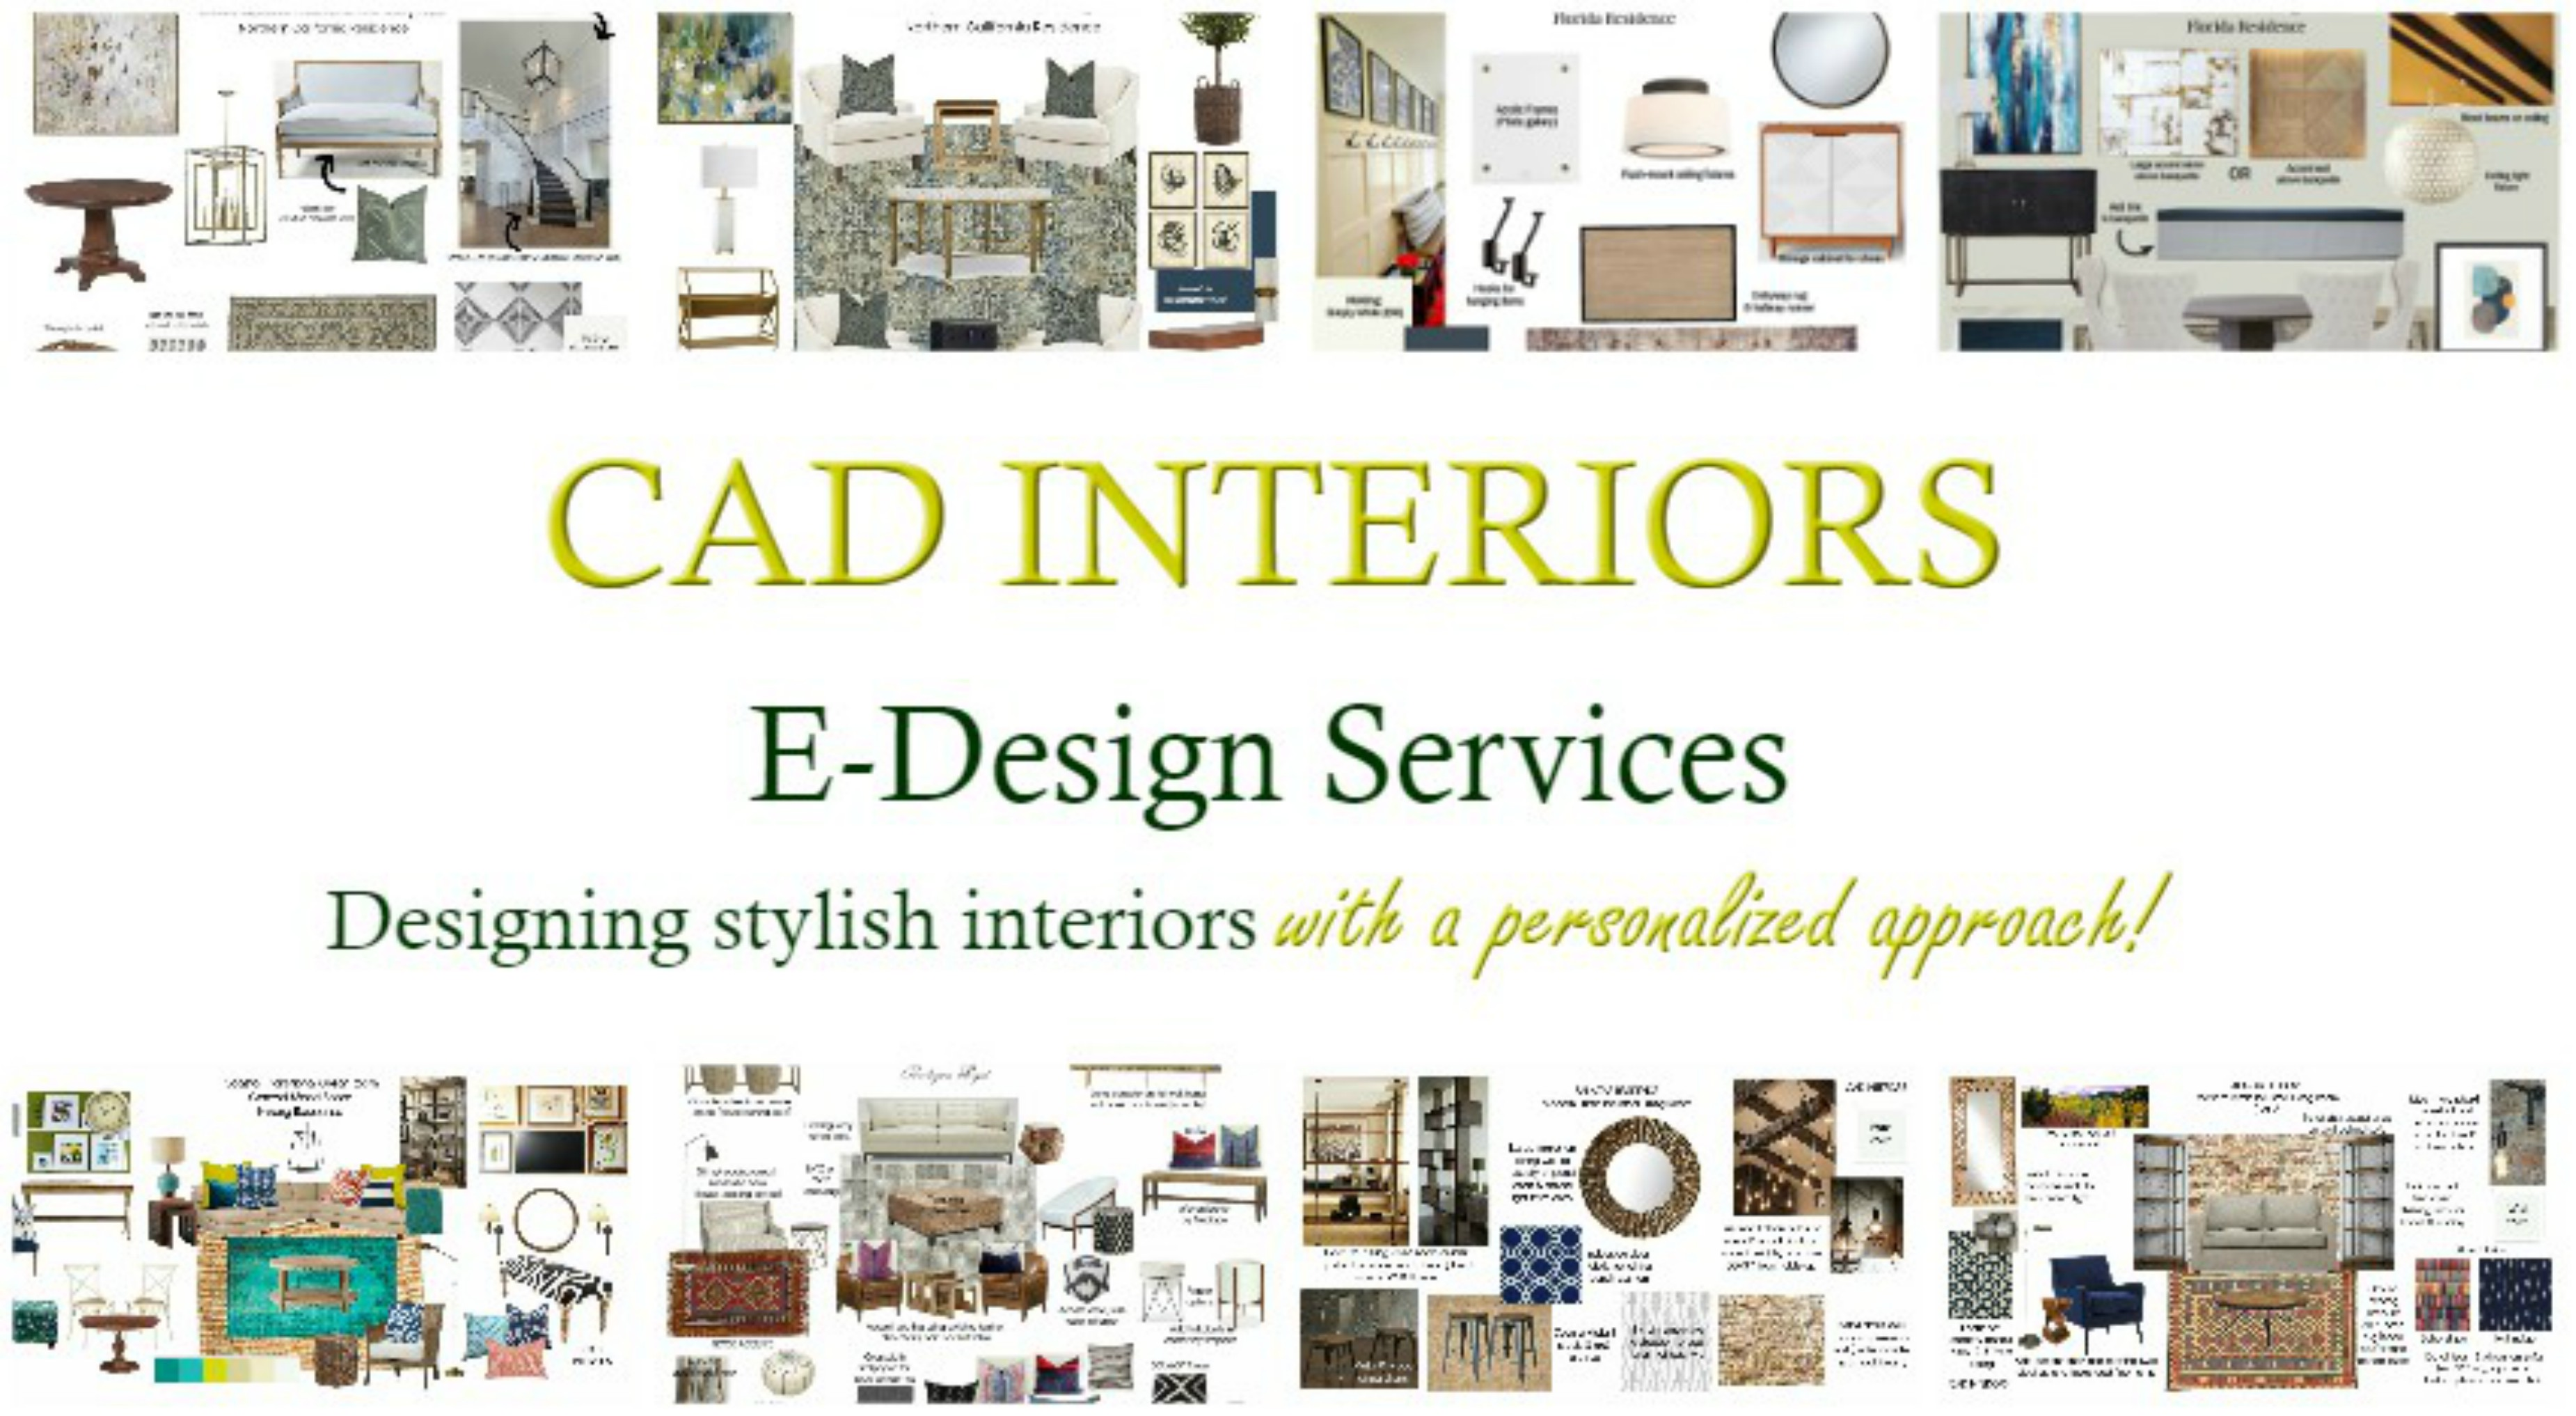 CAD Interiors E-Design Services